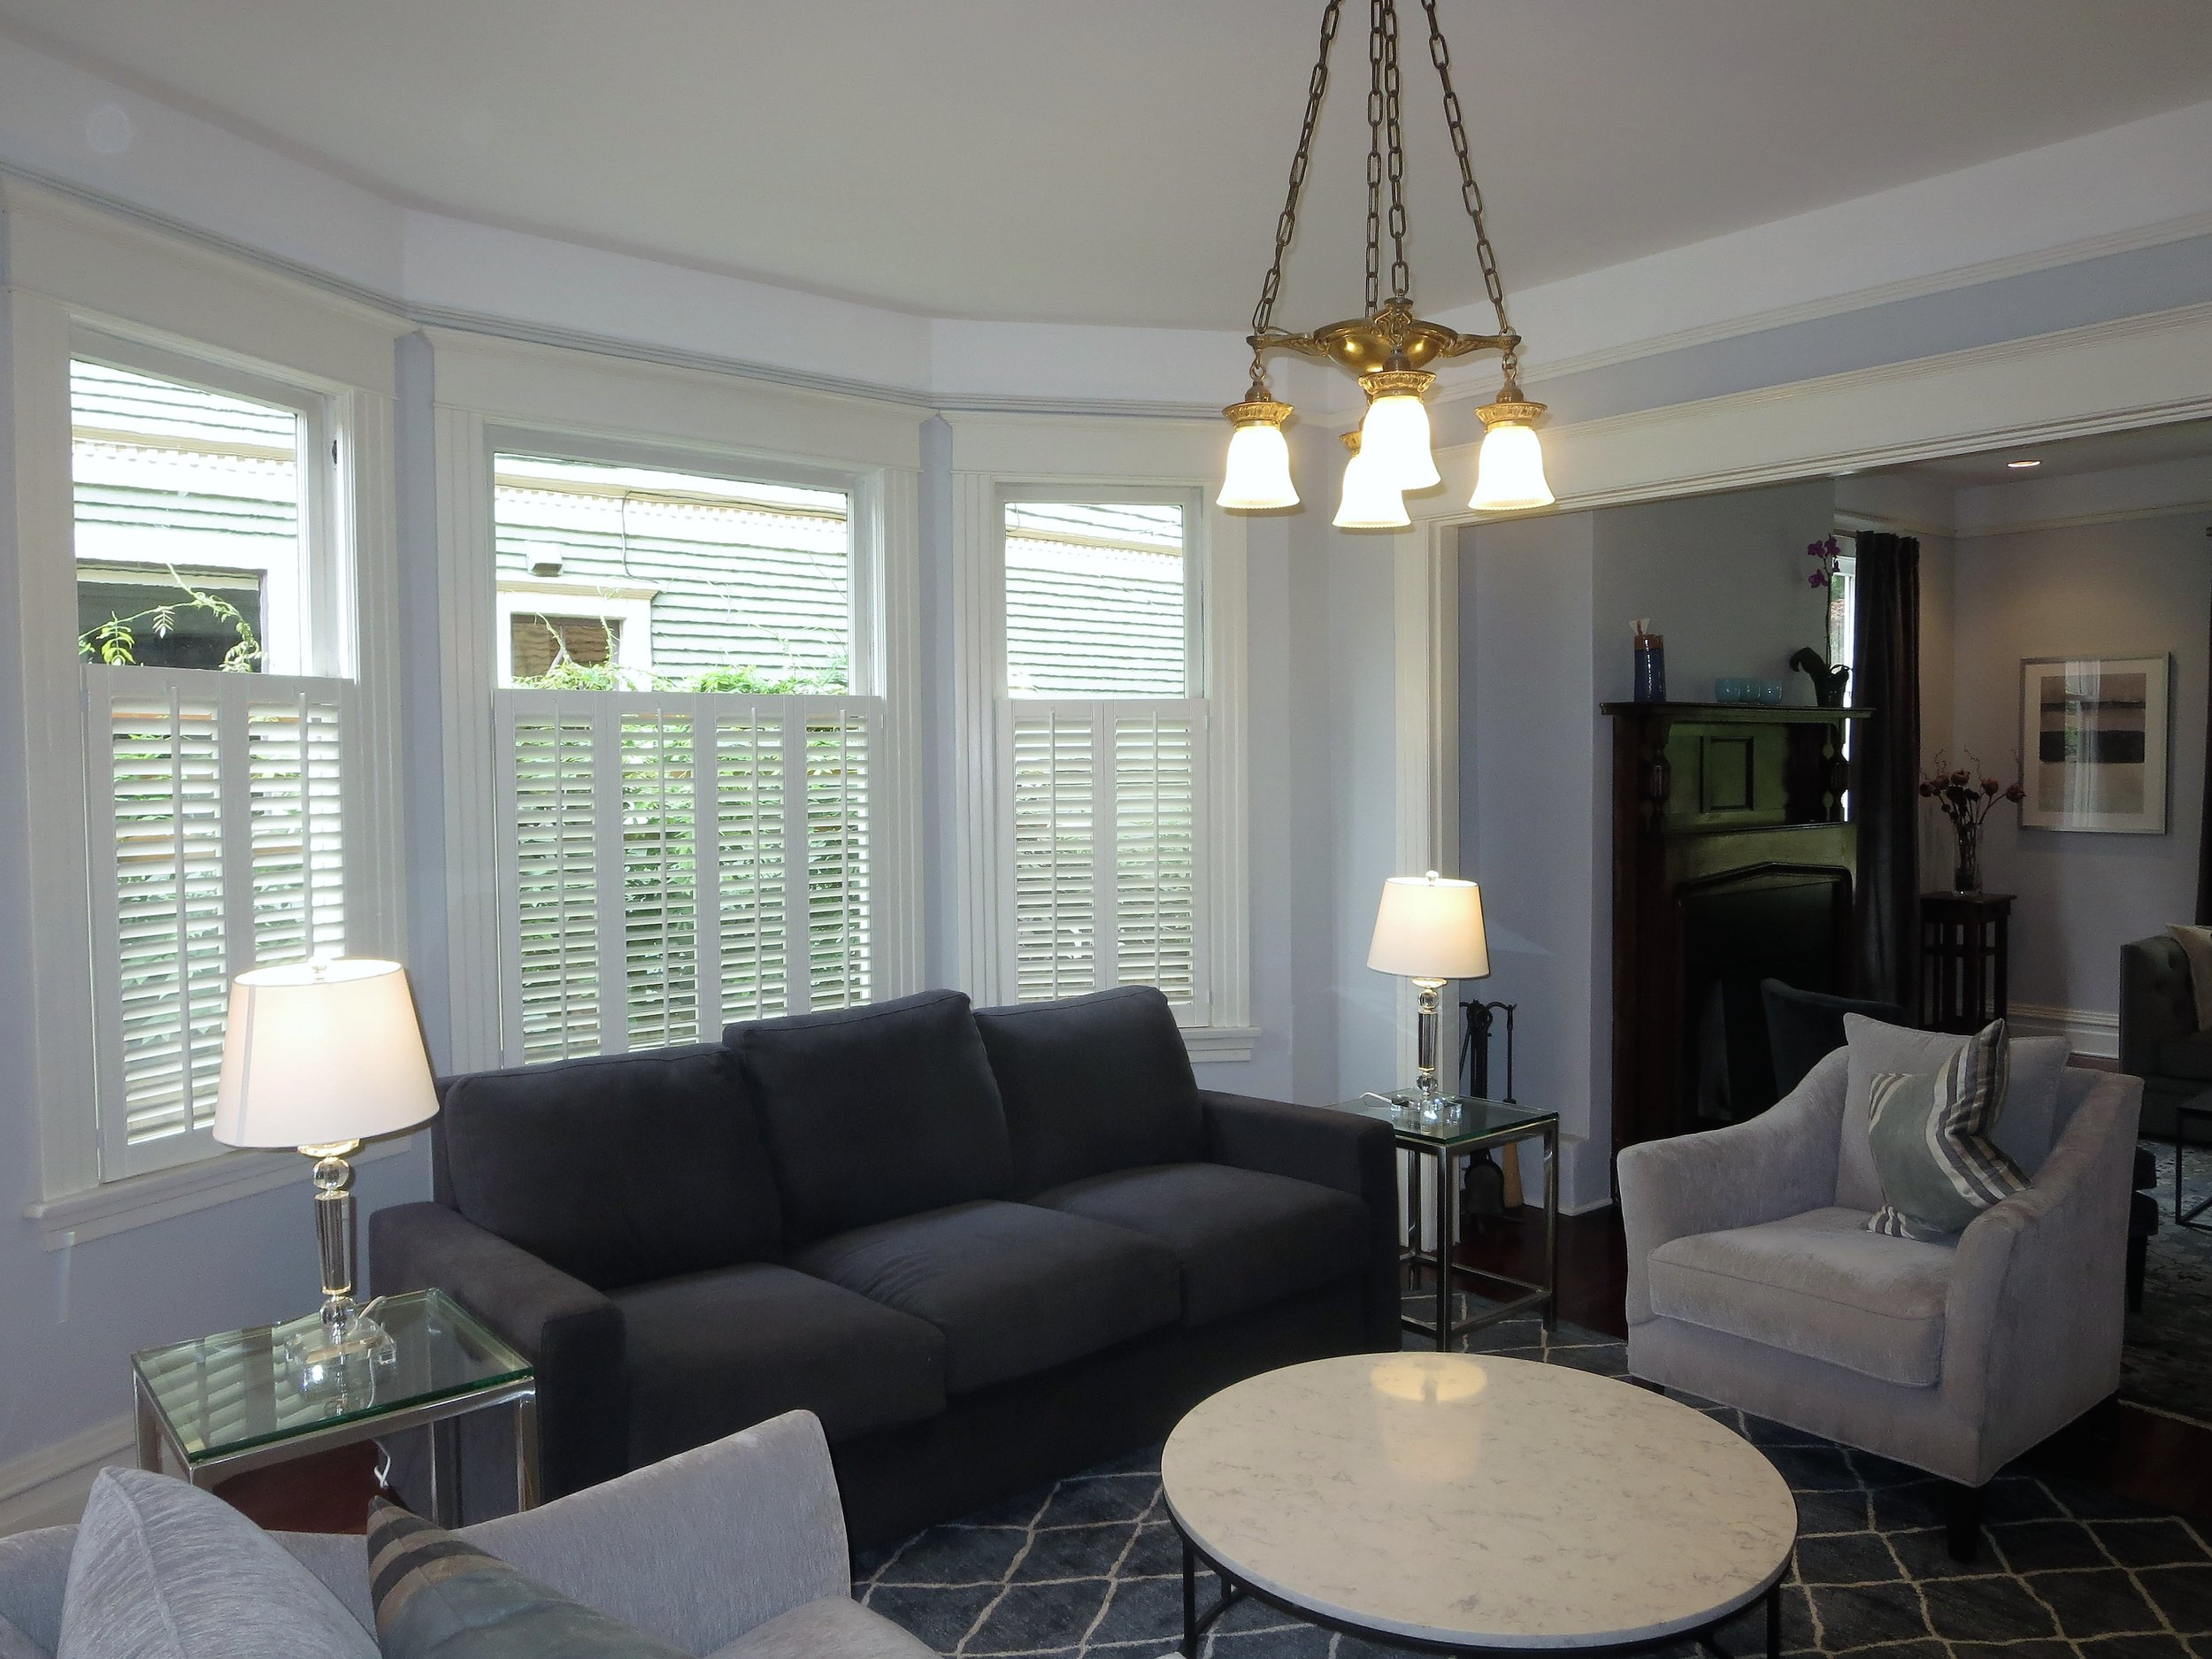 Utilizing Cafe Shutters To Add Design Flair In A Living Room Newport Custom Shutters